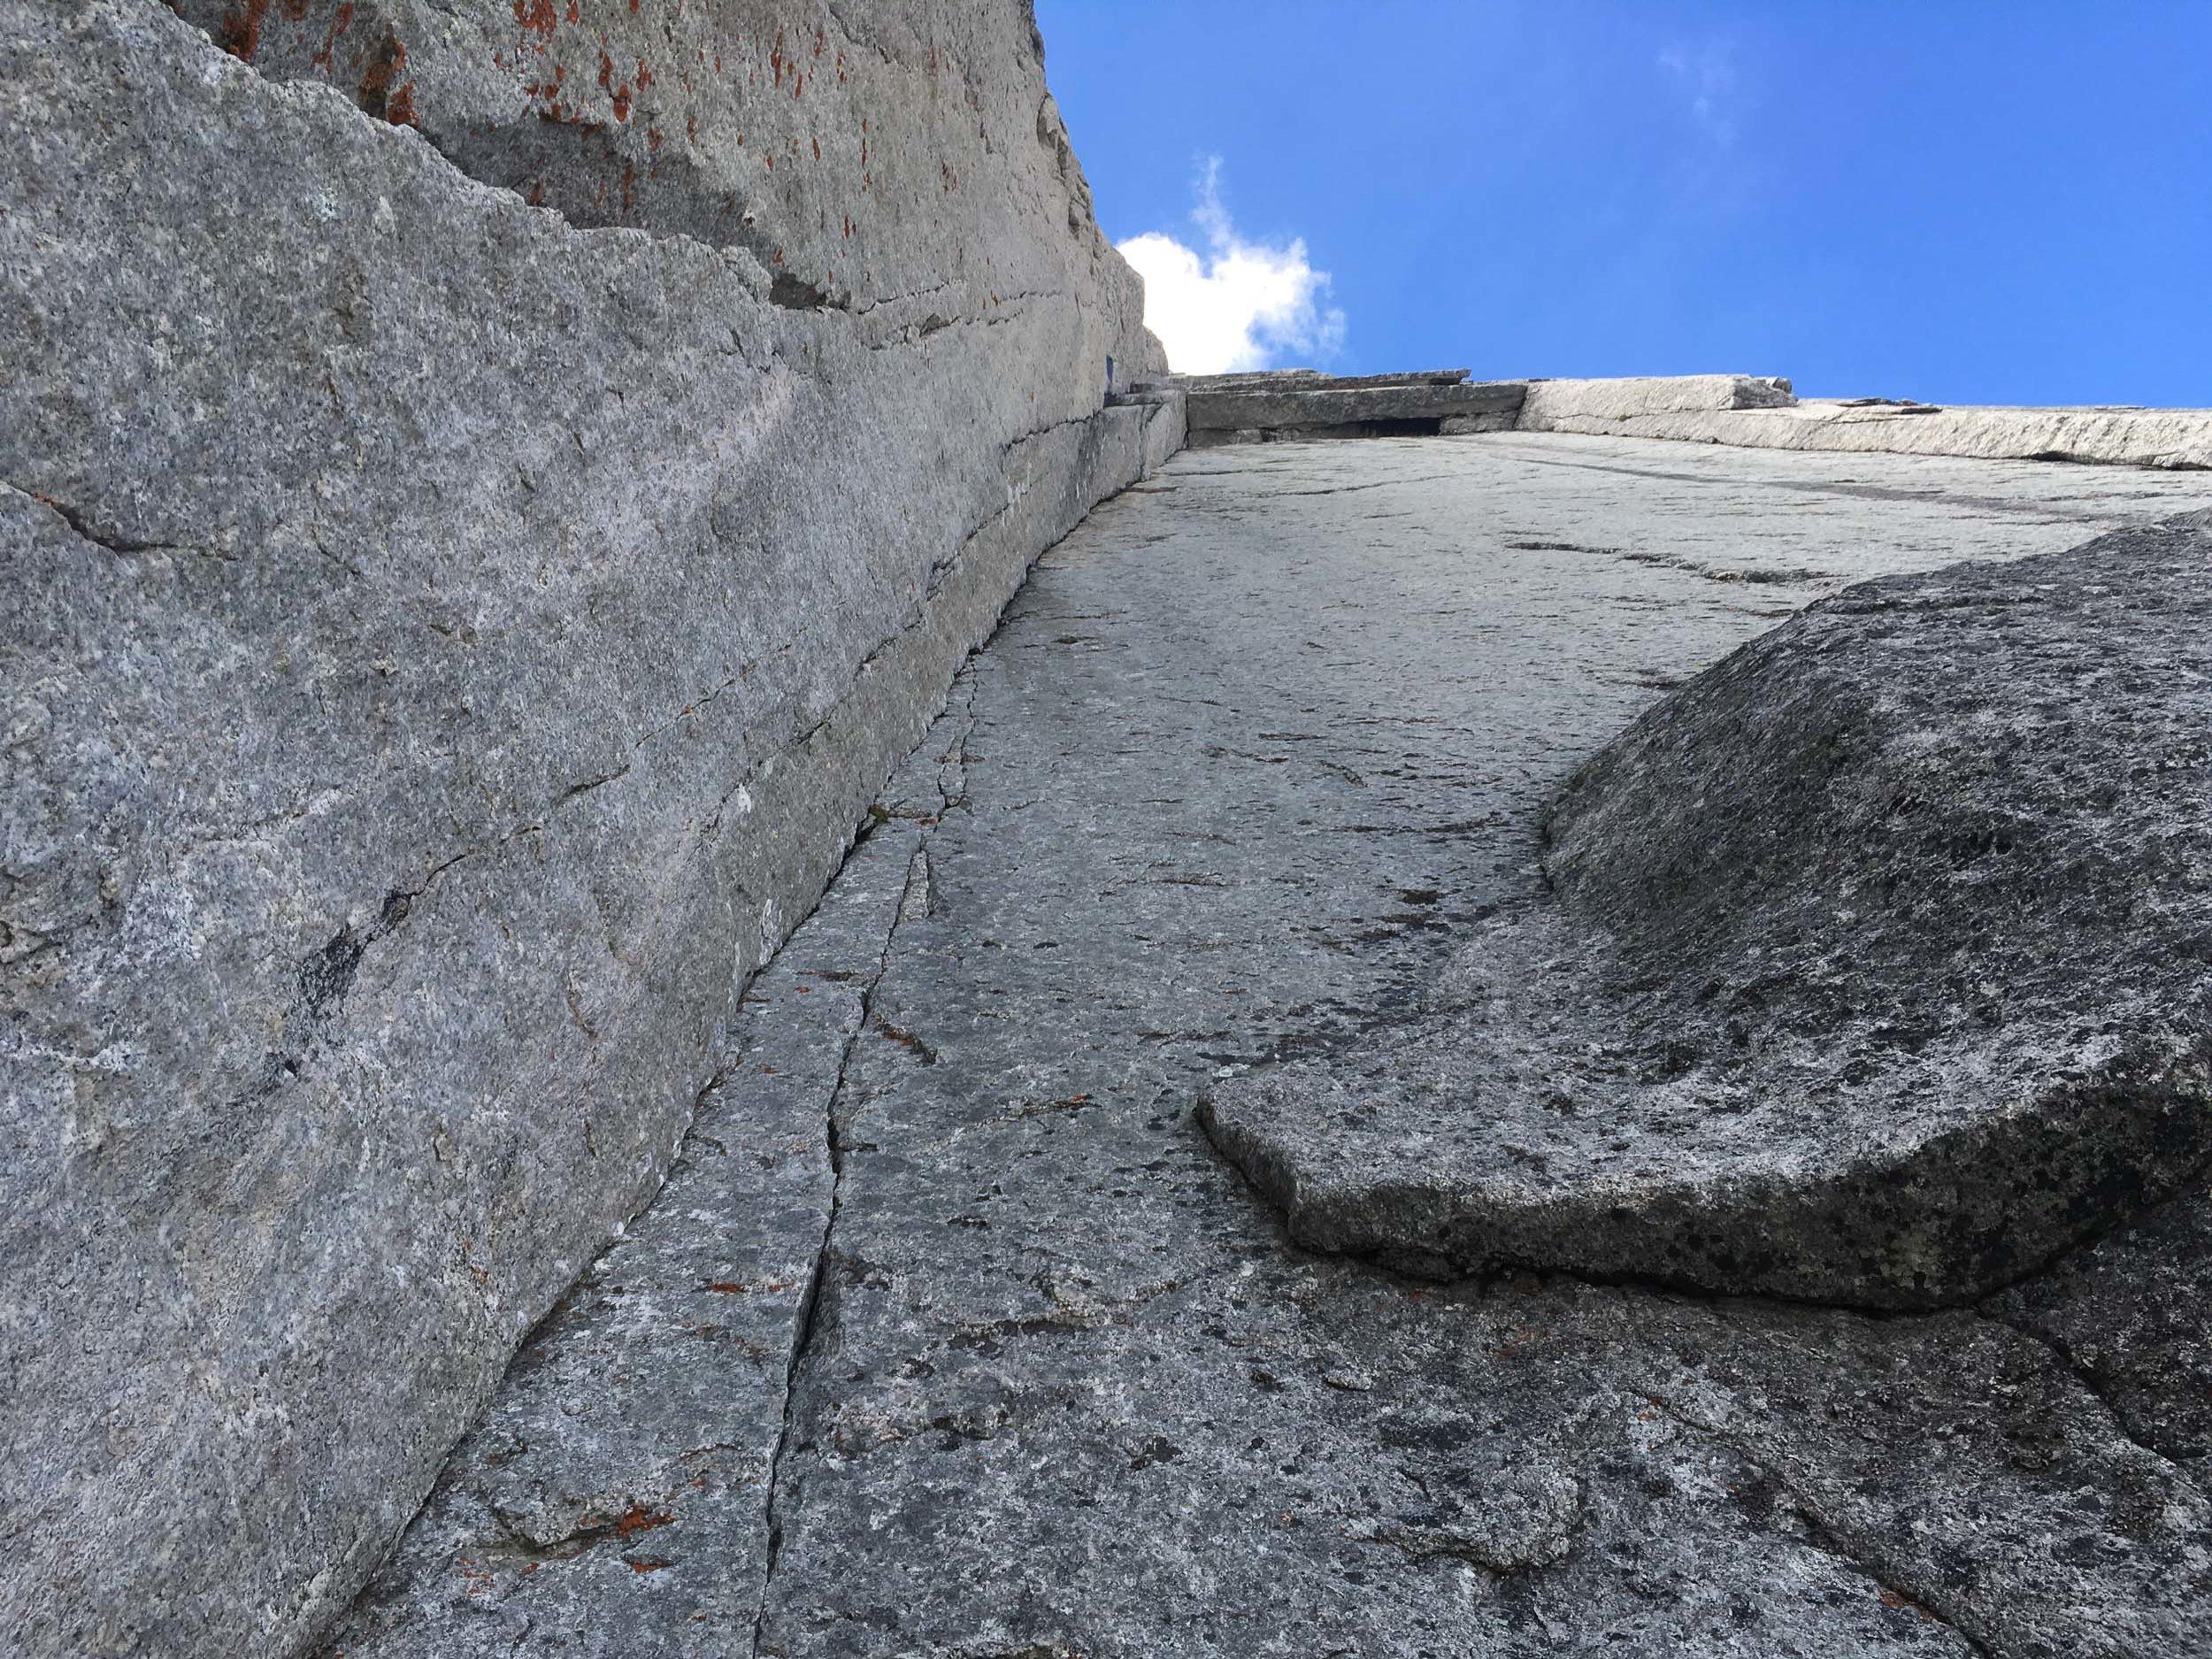 Looking up at the steep and thin crux climbing on the Armageddon.